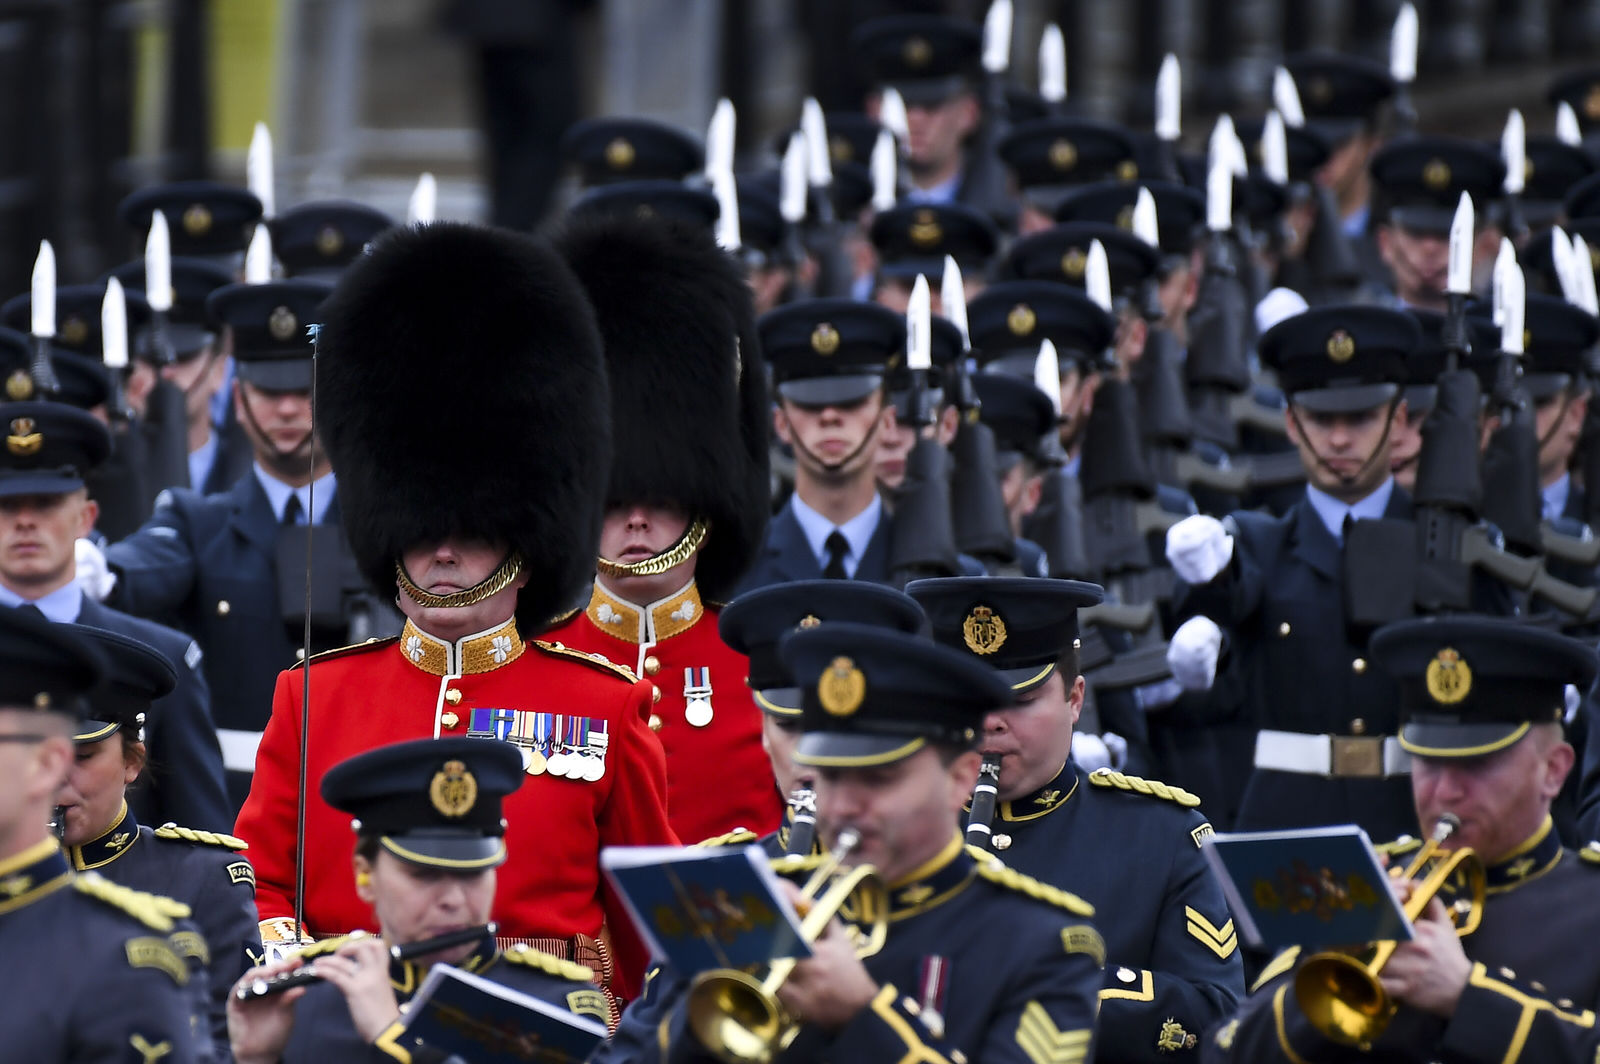 Members of the Armed Forces march on The Mall ahead of the State Opening of Parliament ceremony in London, Monday, Oct. 14, 2019. (AP Photo/Alberto Pezzali)